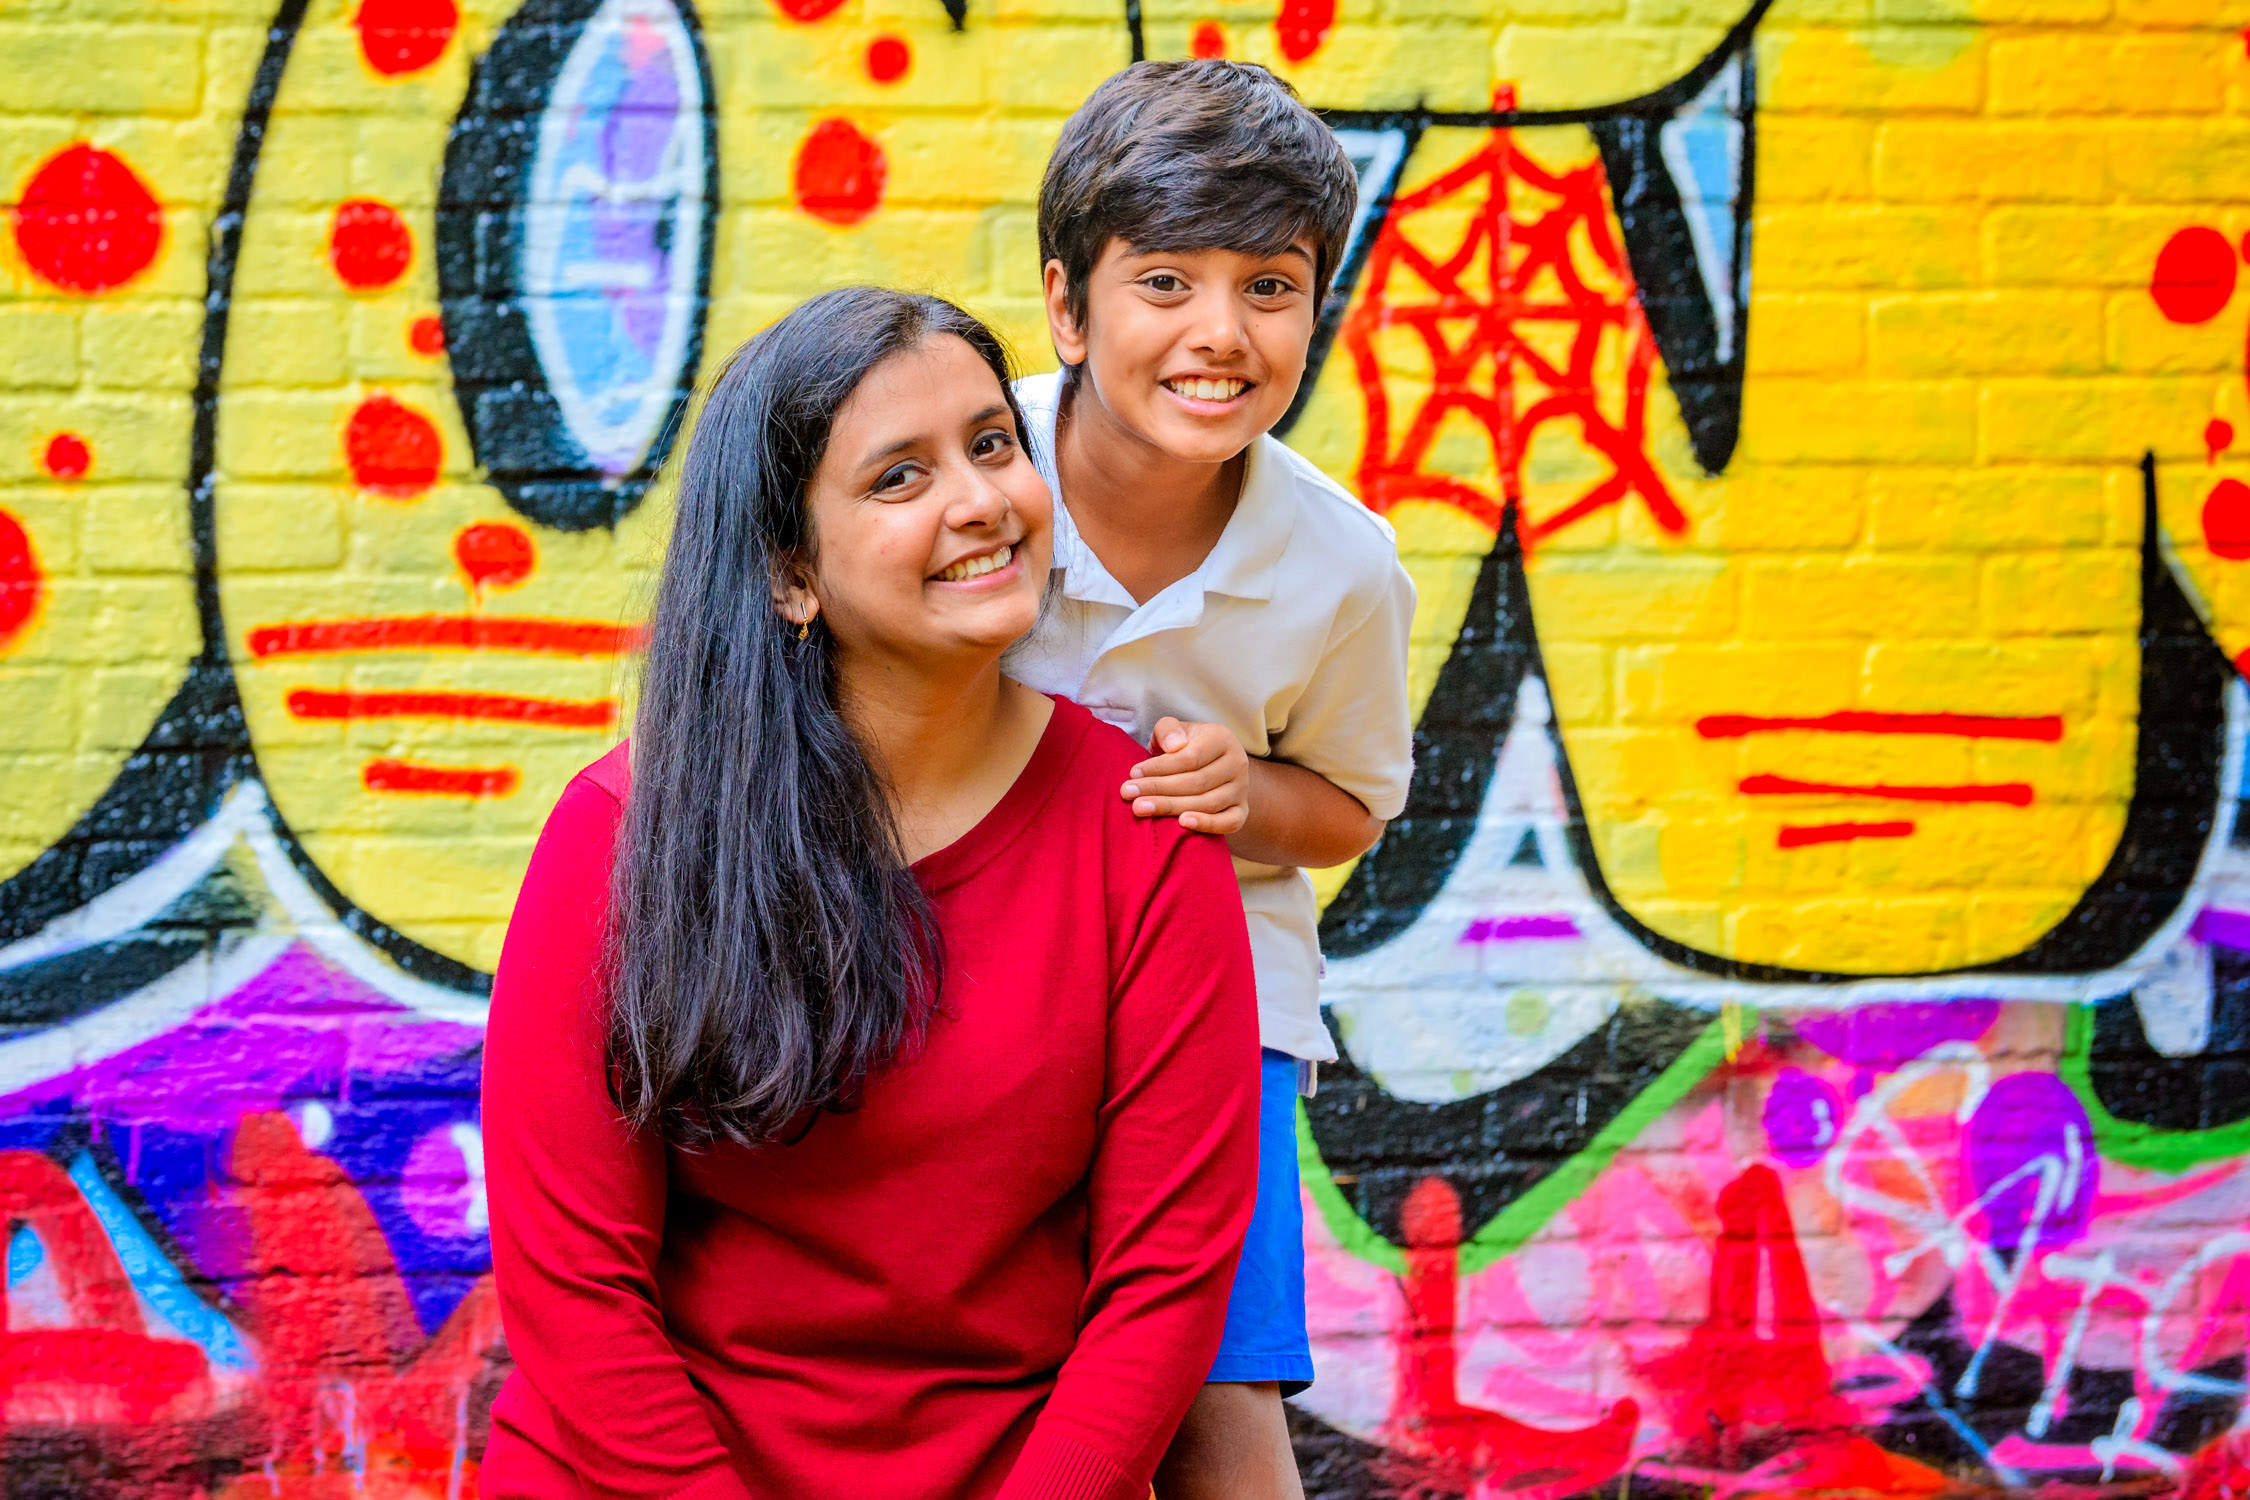 Nephew and aunt in front of grafitti